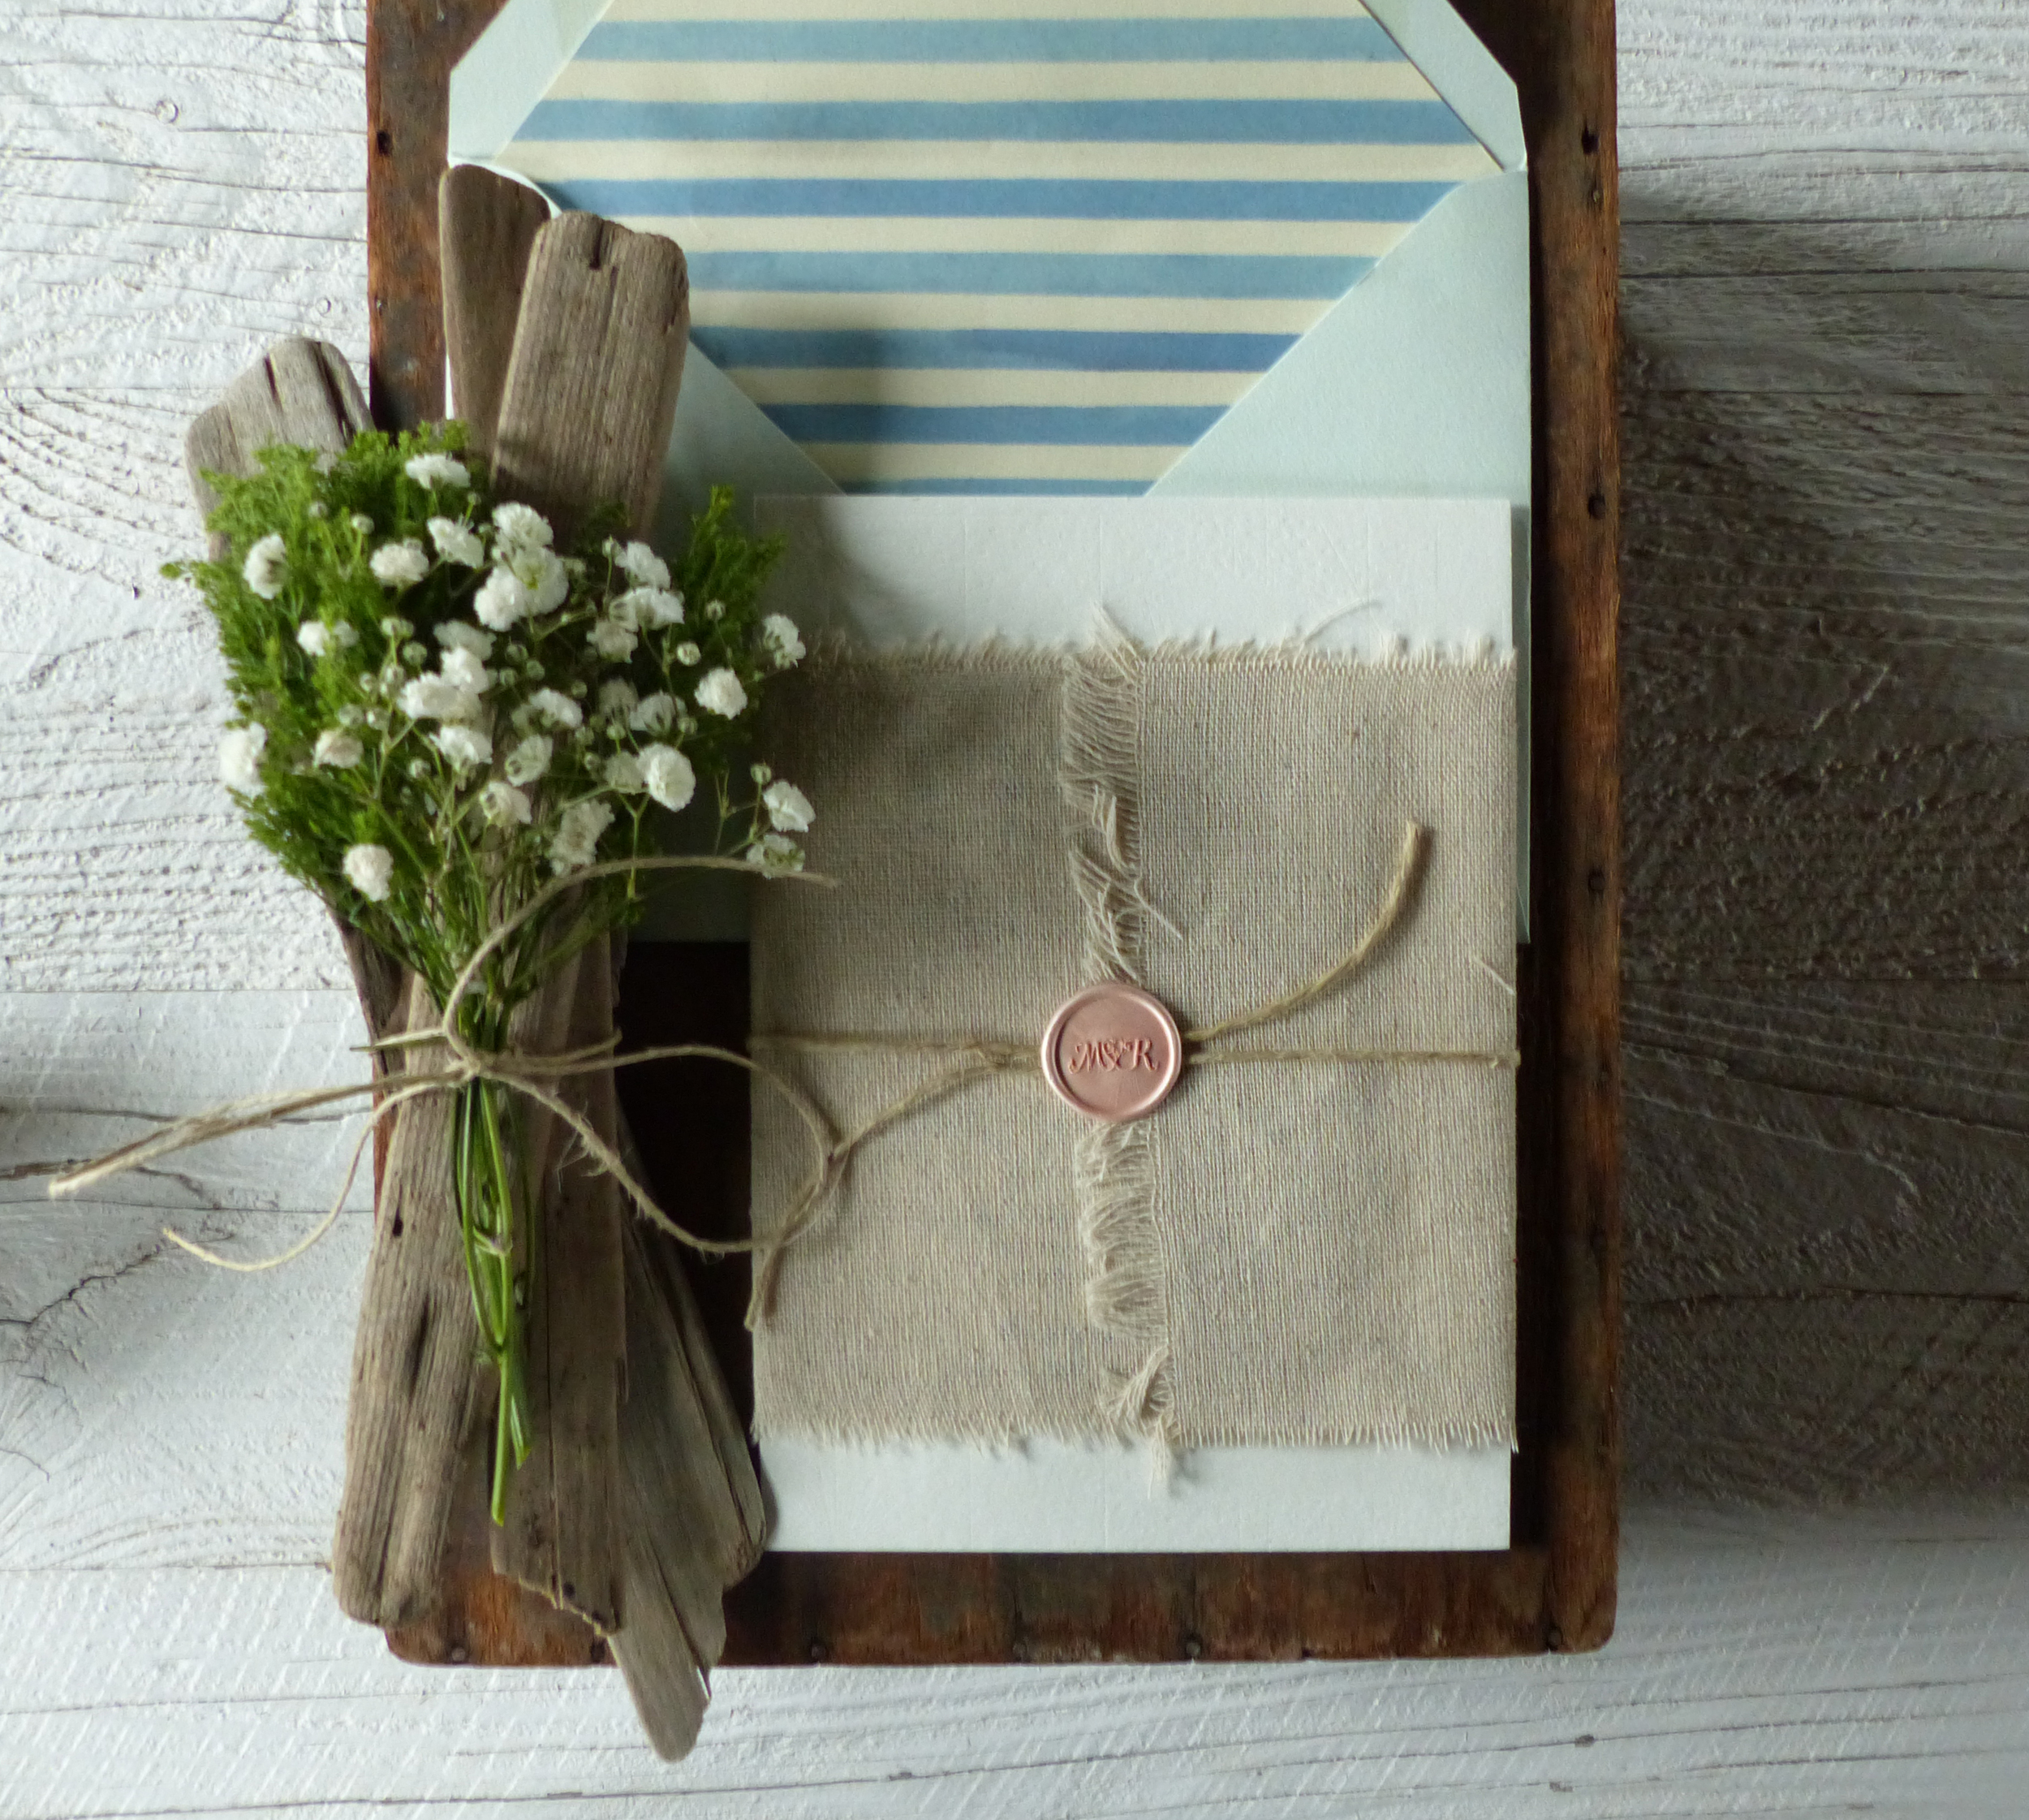 The invitation was wrapped with Belgian linen and sealed with a custom wax seal embossed with the couple's monogram.